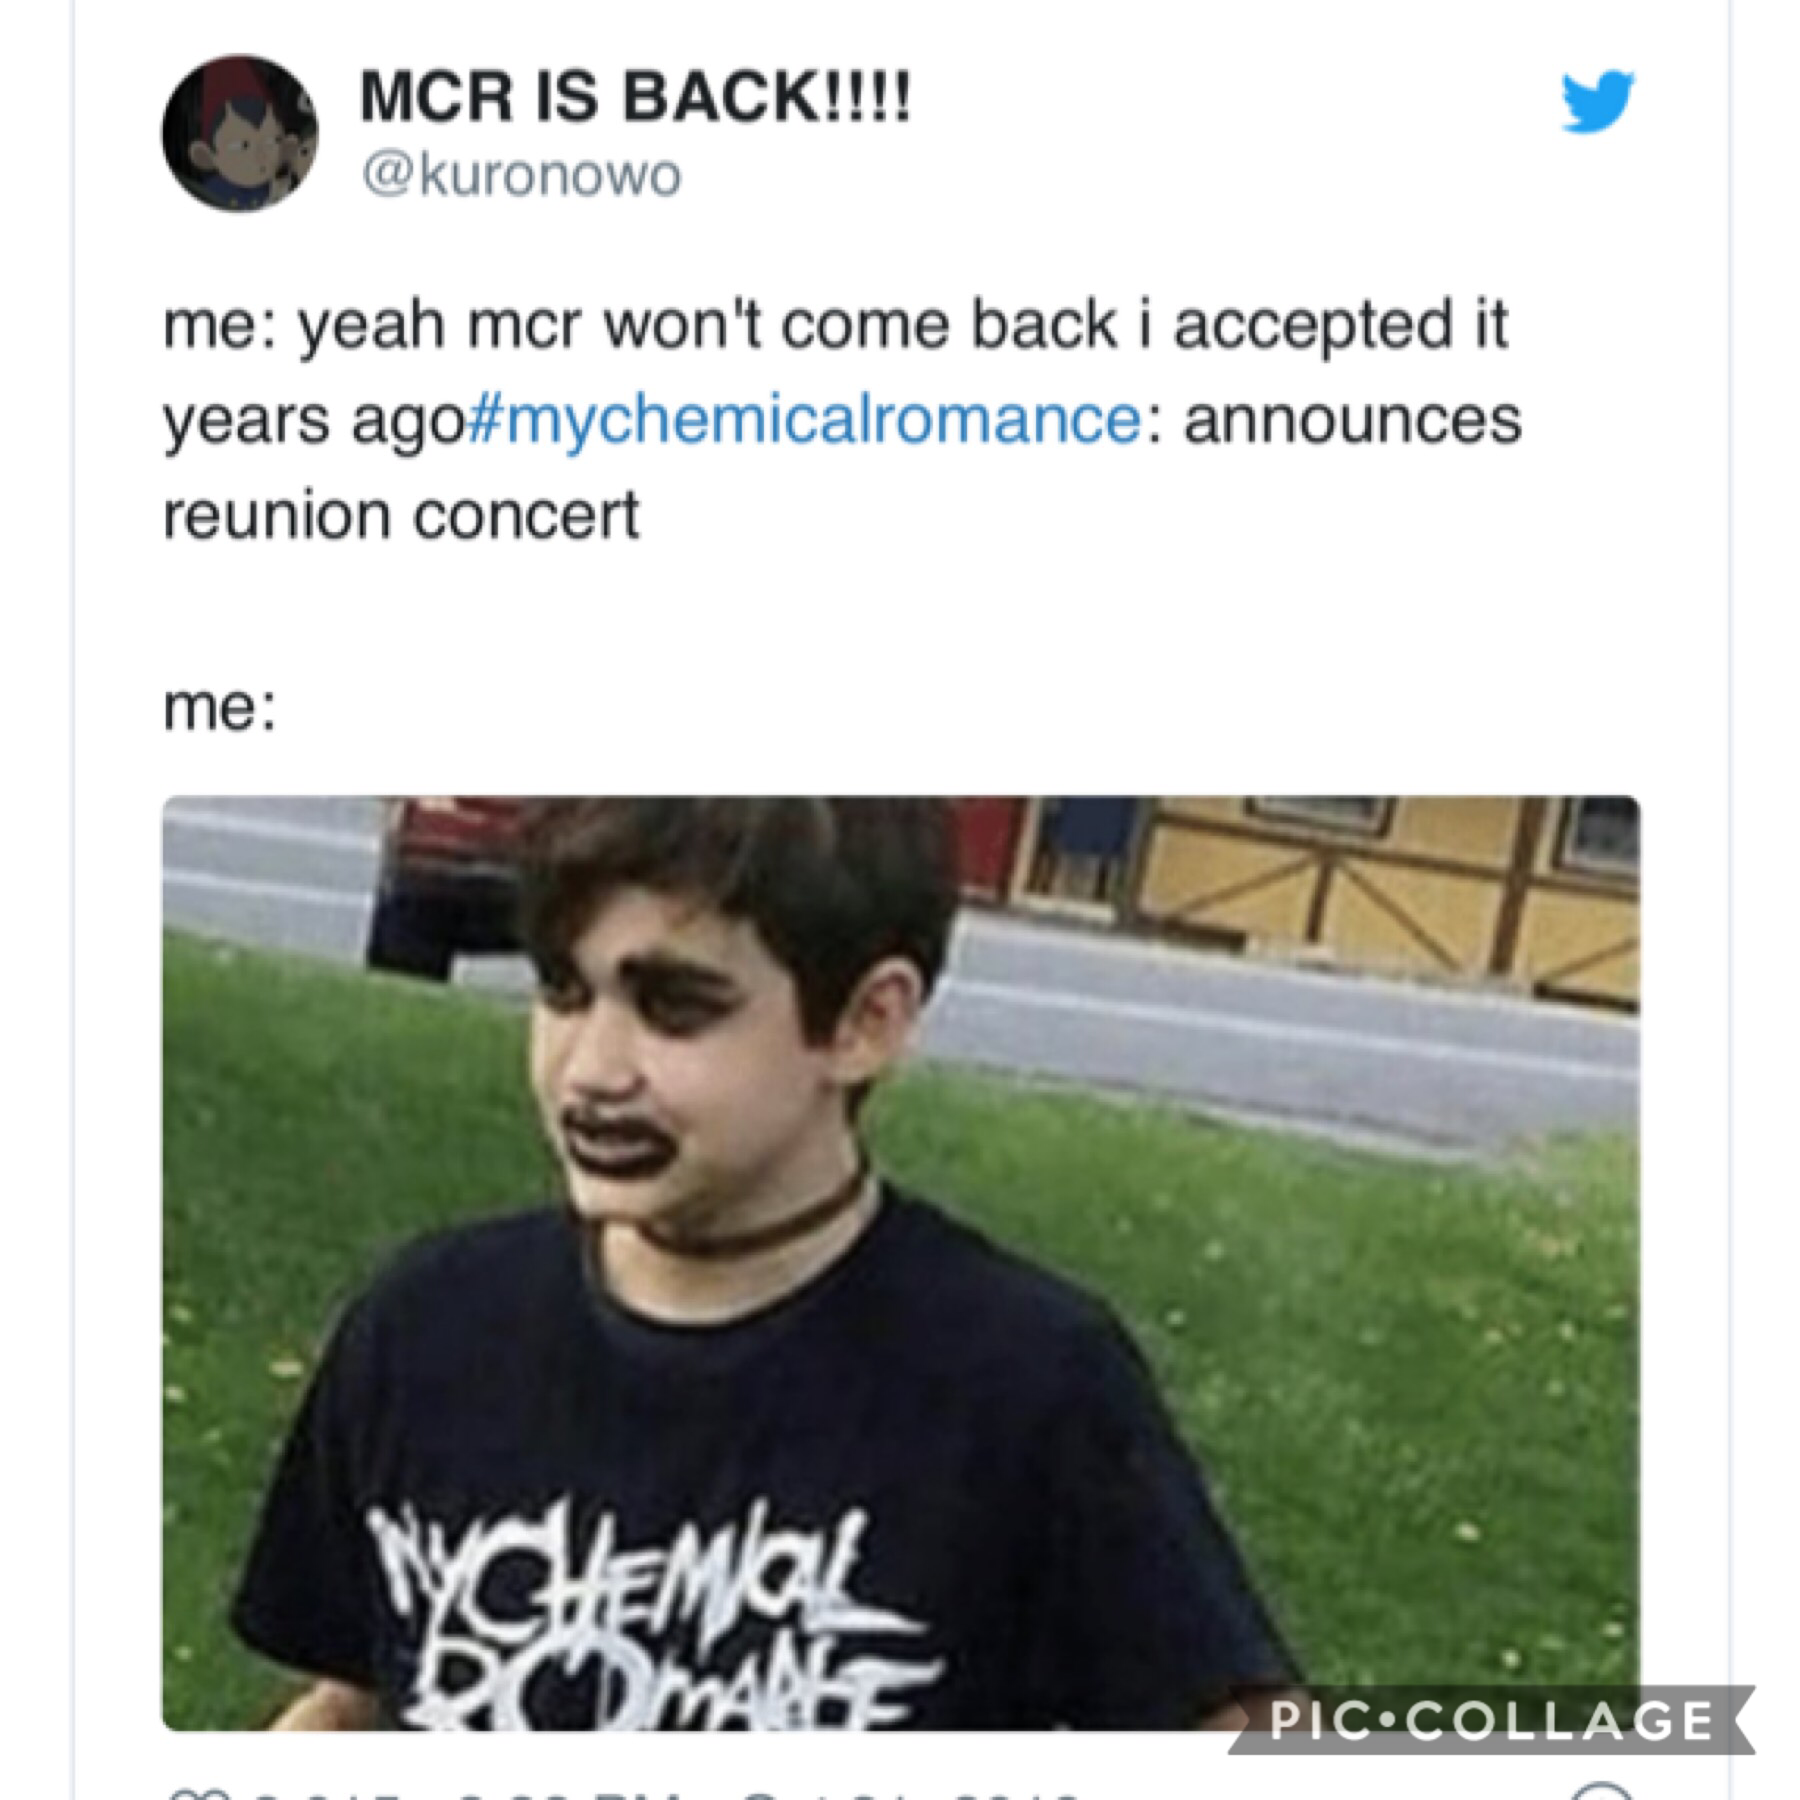 🌈🌈havnt been here in ages and came back to find out MCR is doing a concert and I might die,, my emo came back.  ALSO HAPPY HALLOWEEN TO THOSE WHO CELEBRATE IT🎃🌈🌈